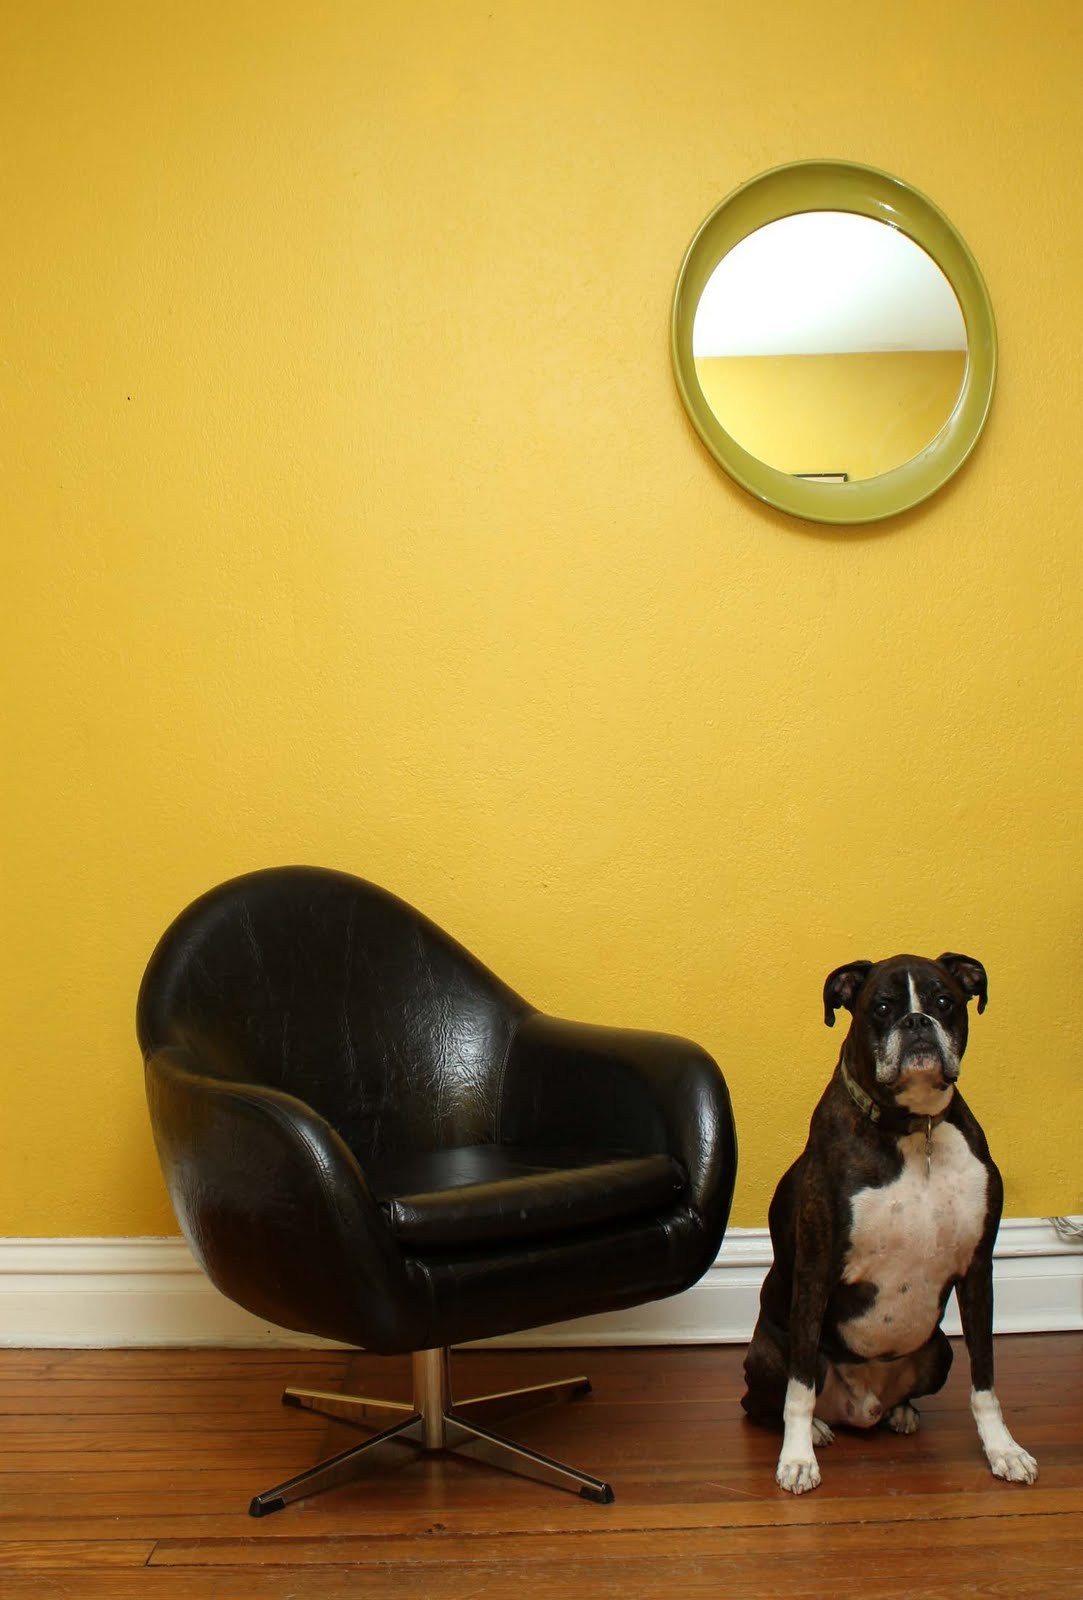 Men In Black Egg Chair Dingaling Vintage Gt Its Like This And Like That